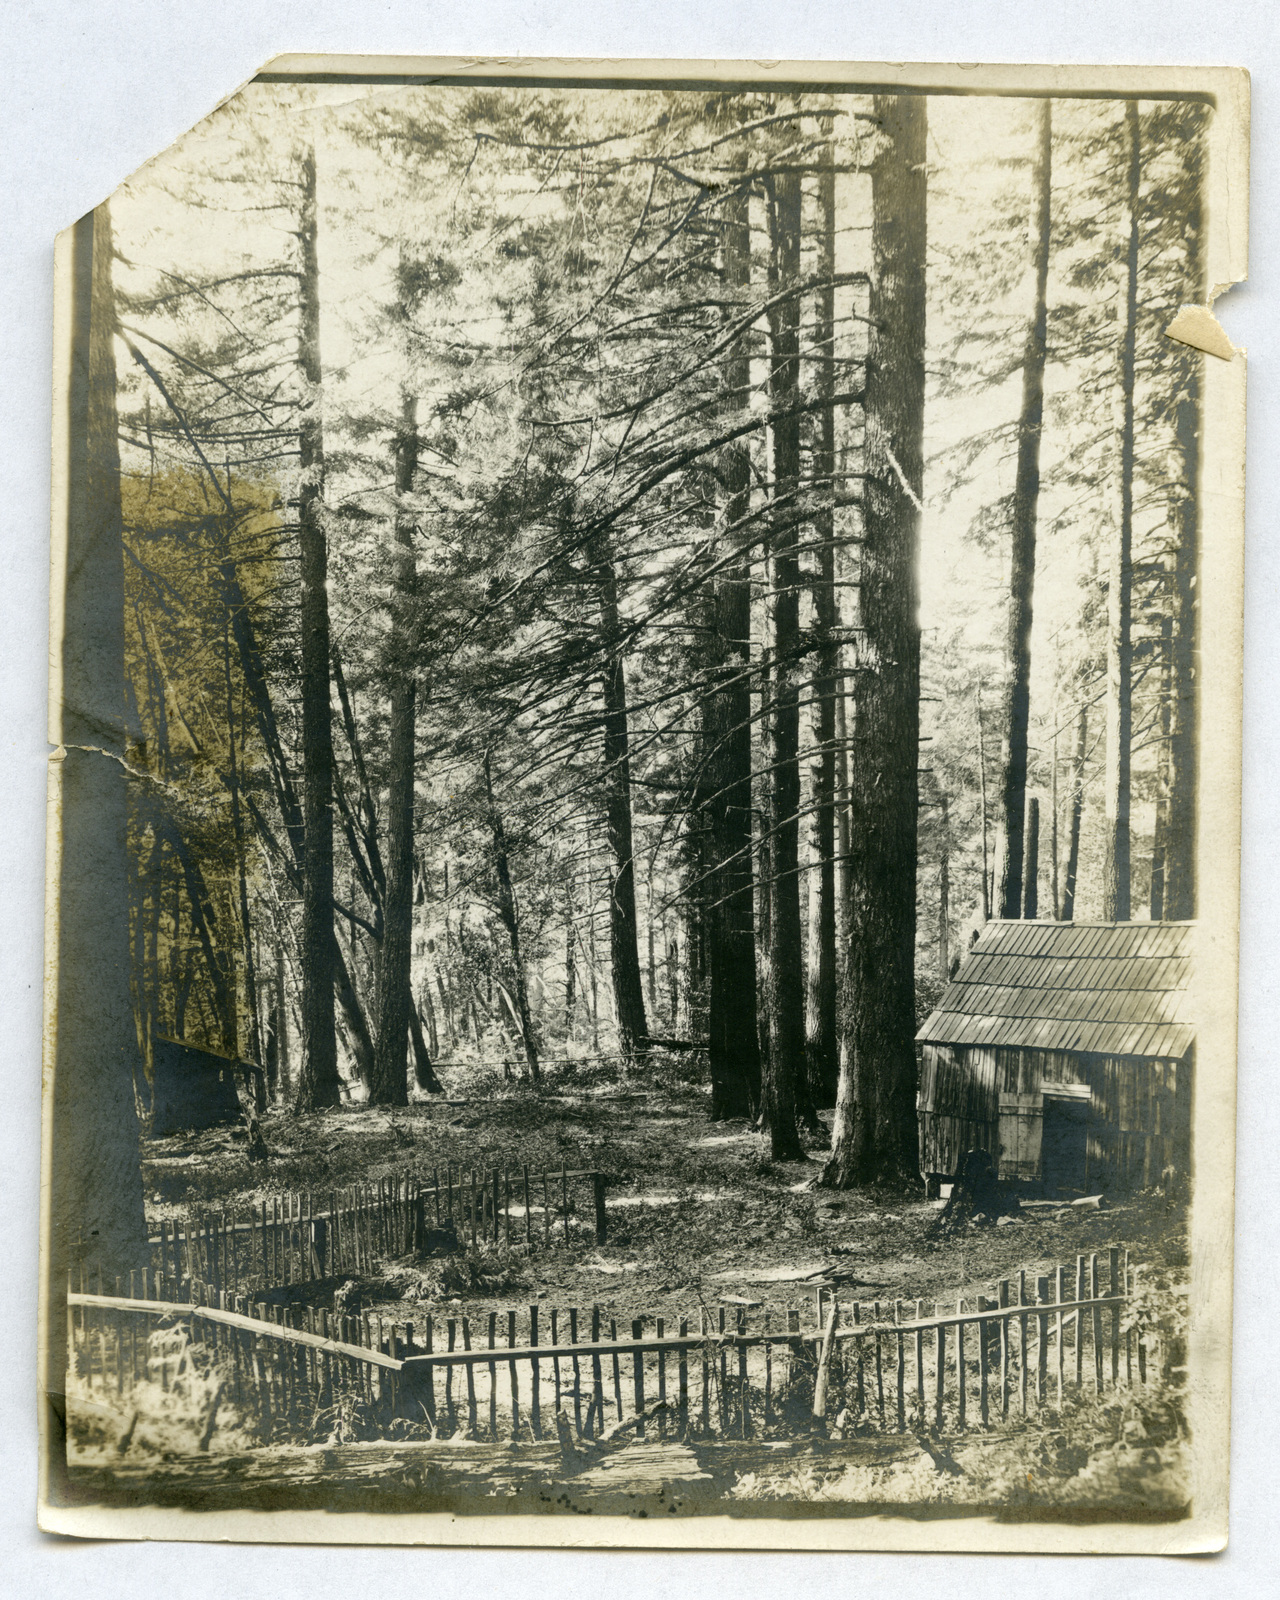 Photograph of a Cabin in the Woods Surrounded by a Fence